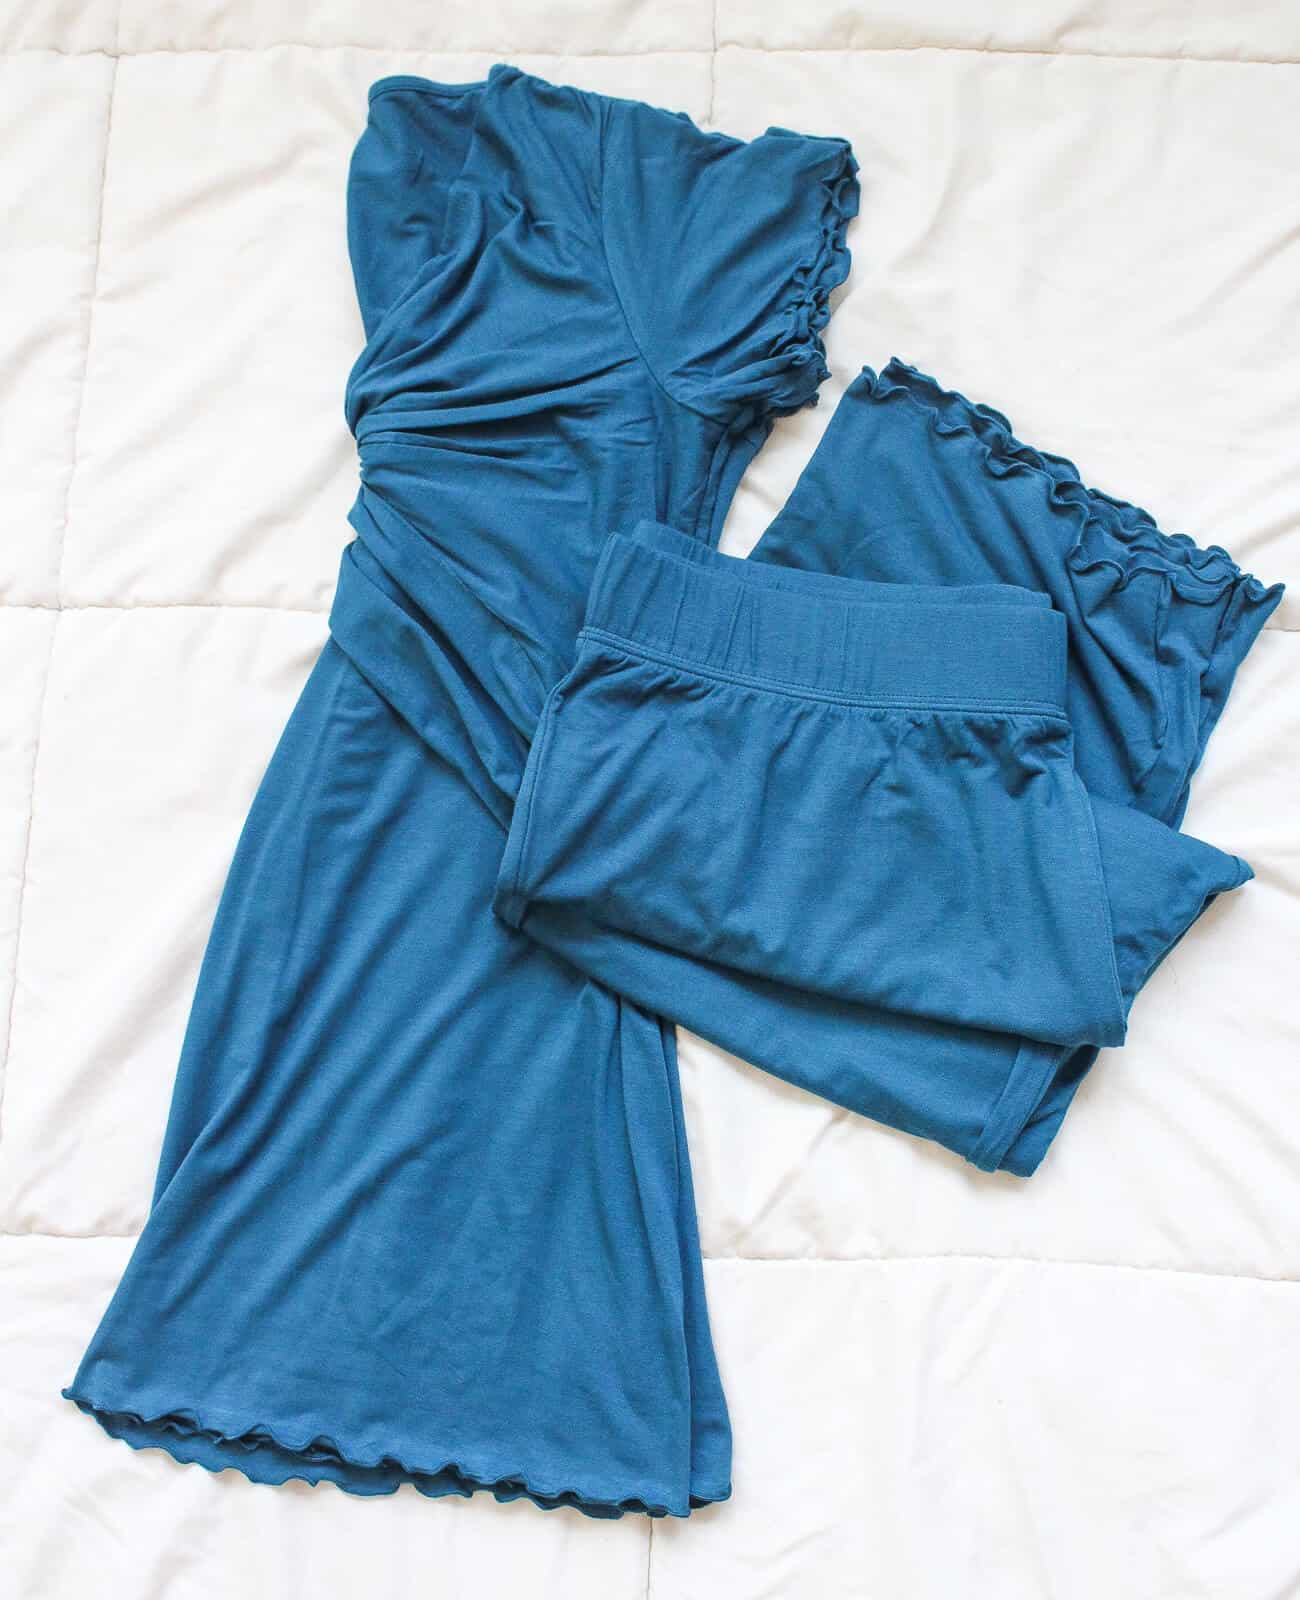 Blue clothing set to be warn in hospital after baby delivery.